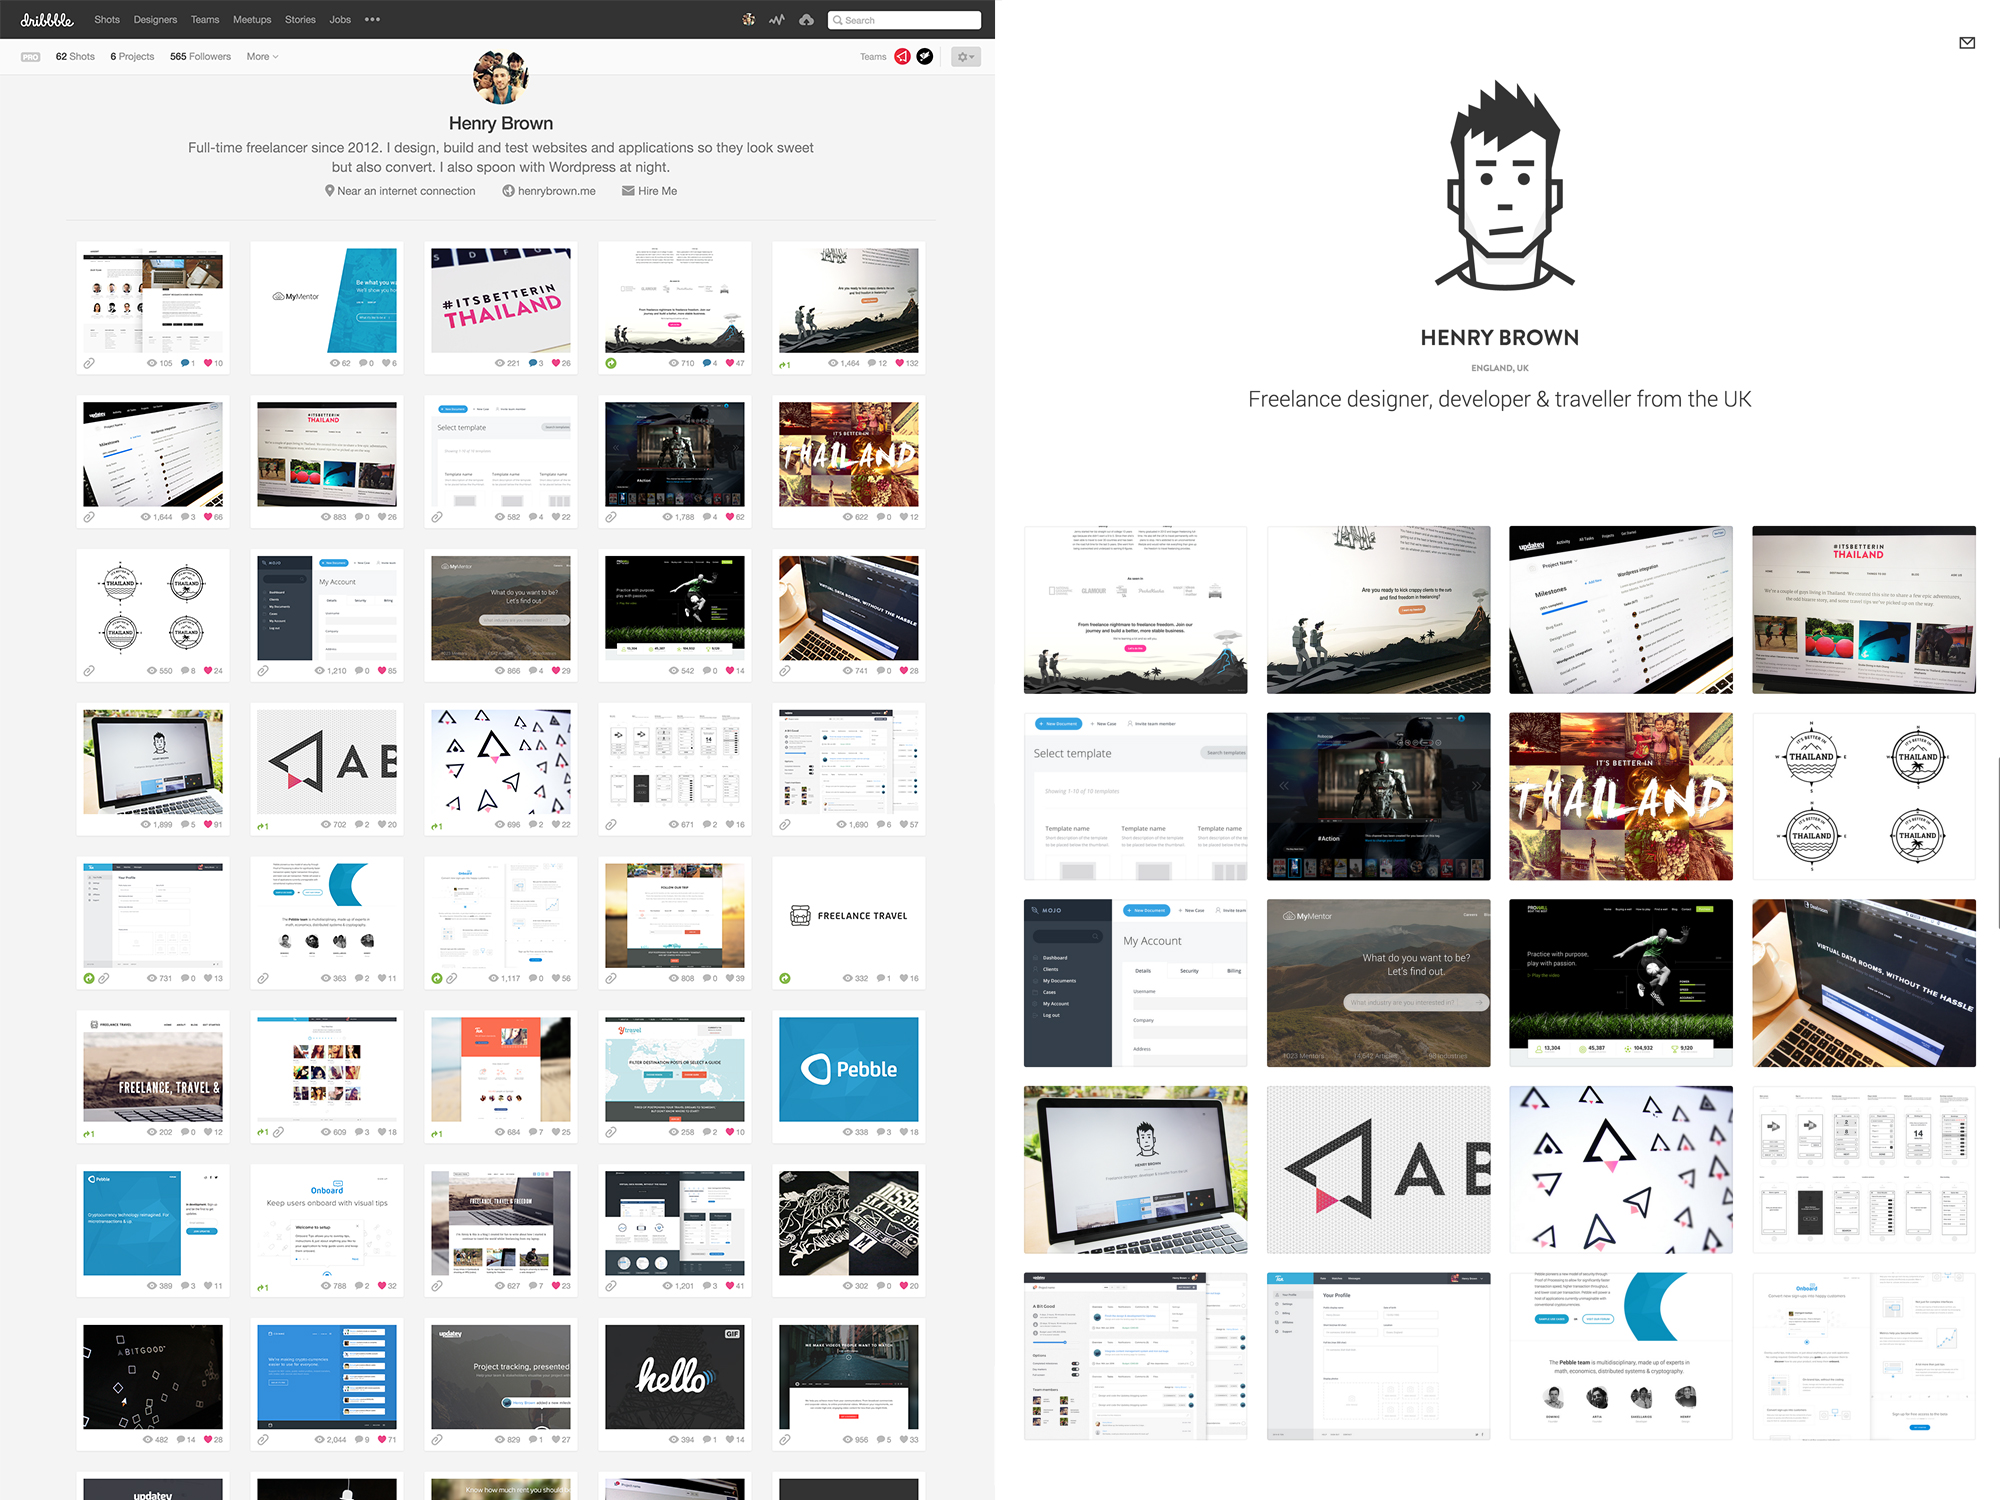 My Dribbble profile is on the left and my portfolio website is on the right